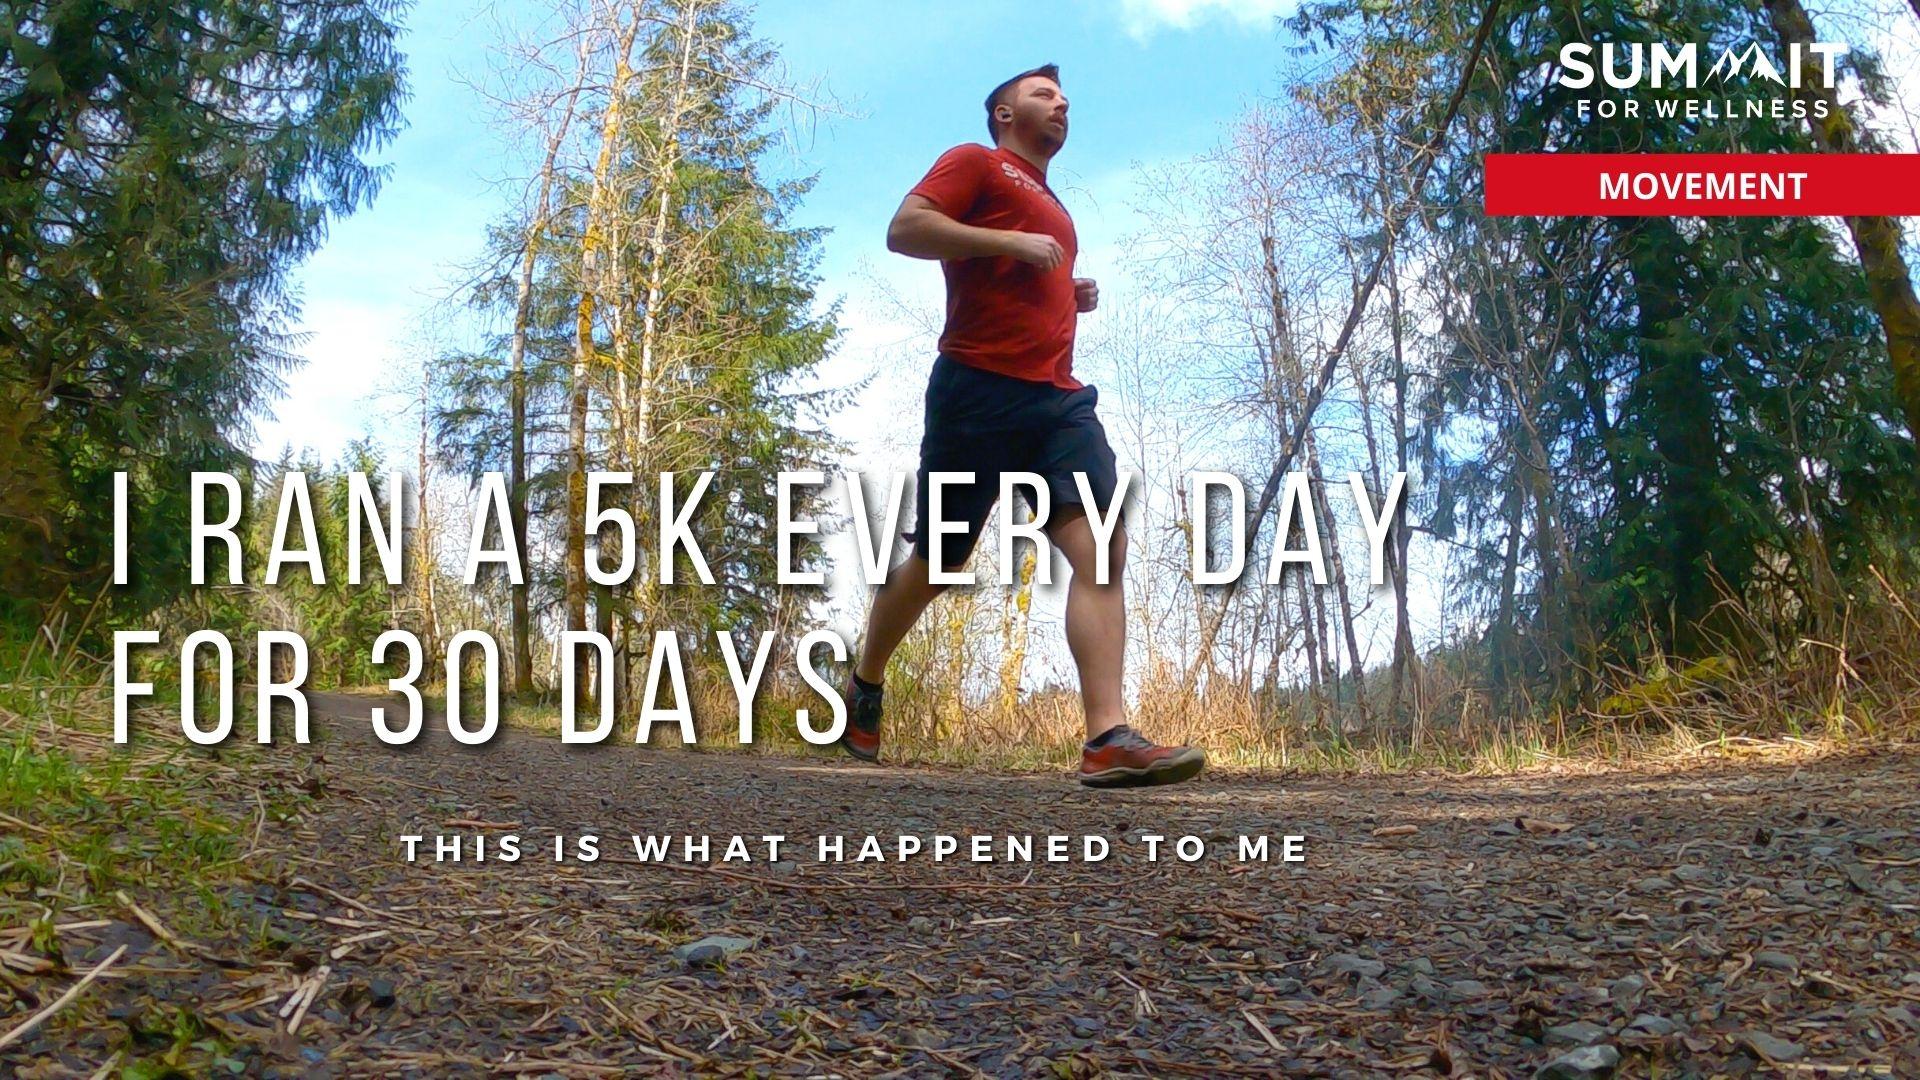 Learn what happened to my body after 30 days of 5ks